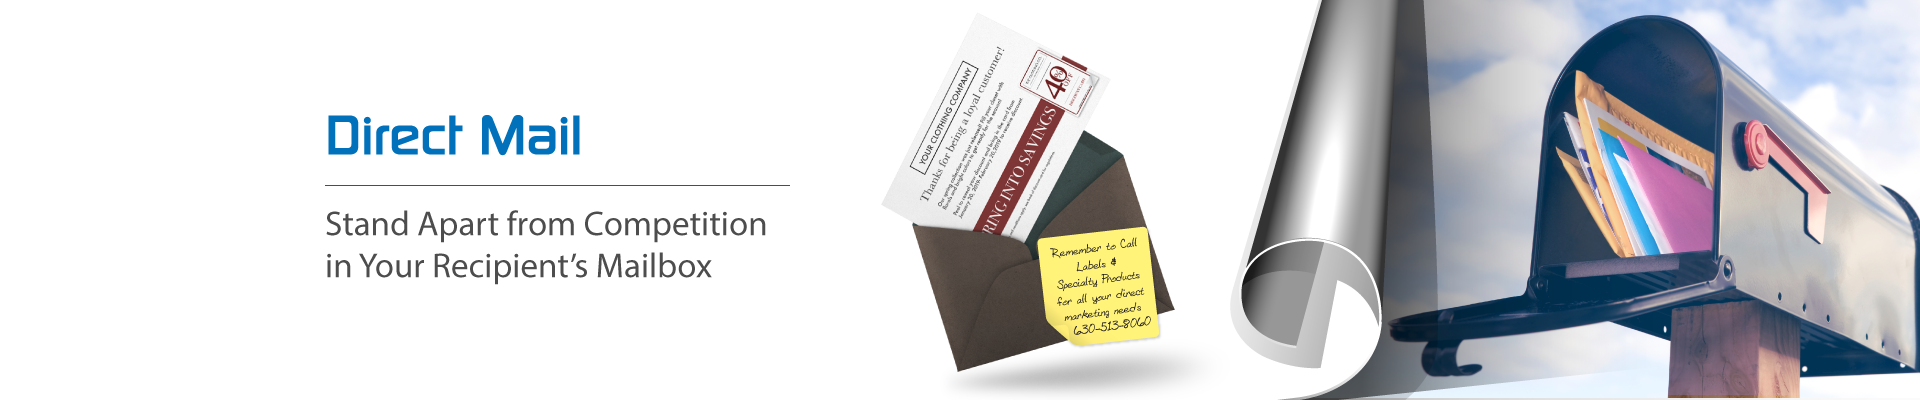 promotional direct mail